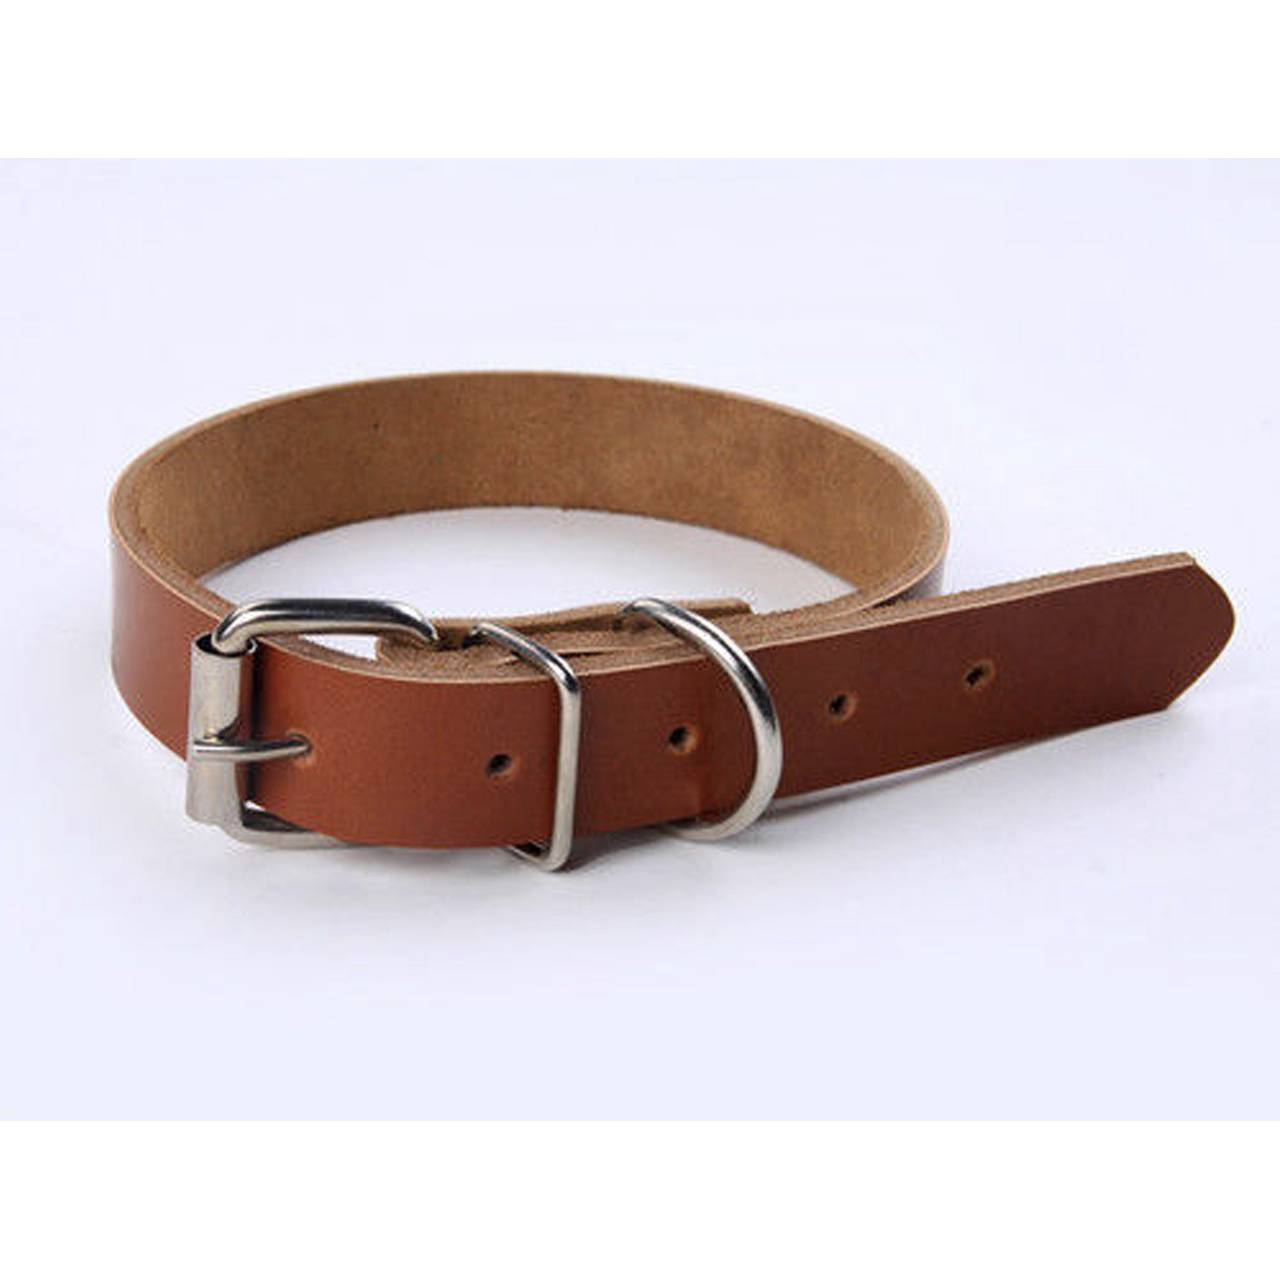 New Genuine Real Leather Dog Collar Free UK 1st Class P&P